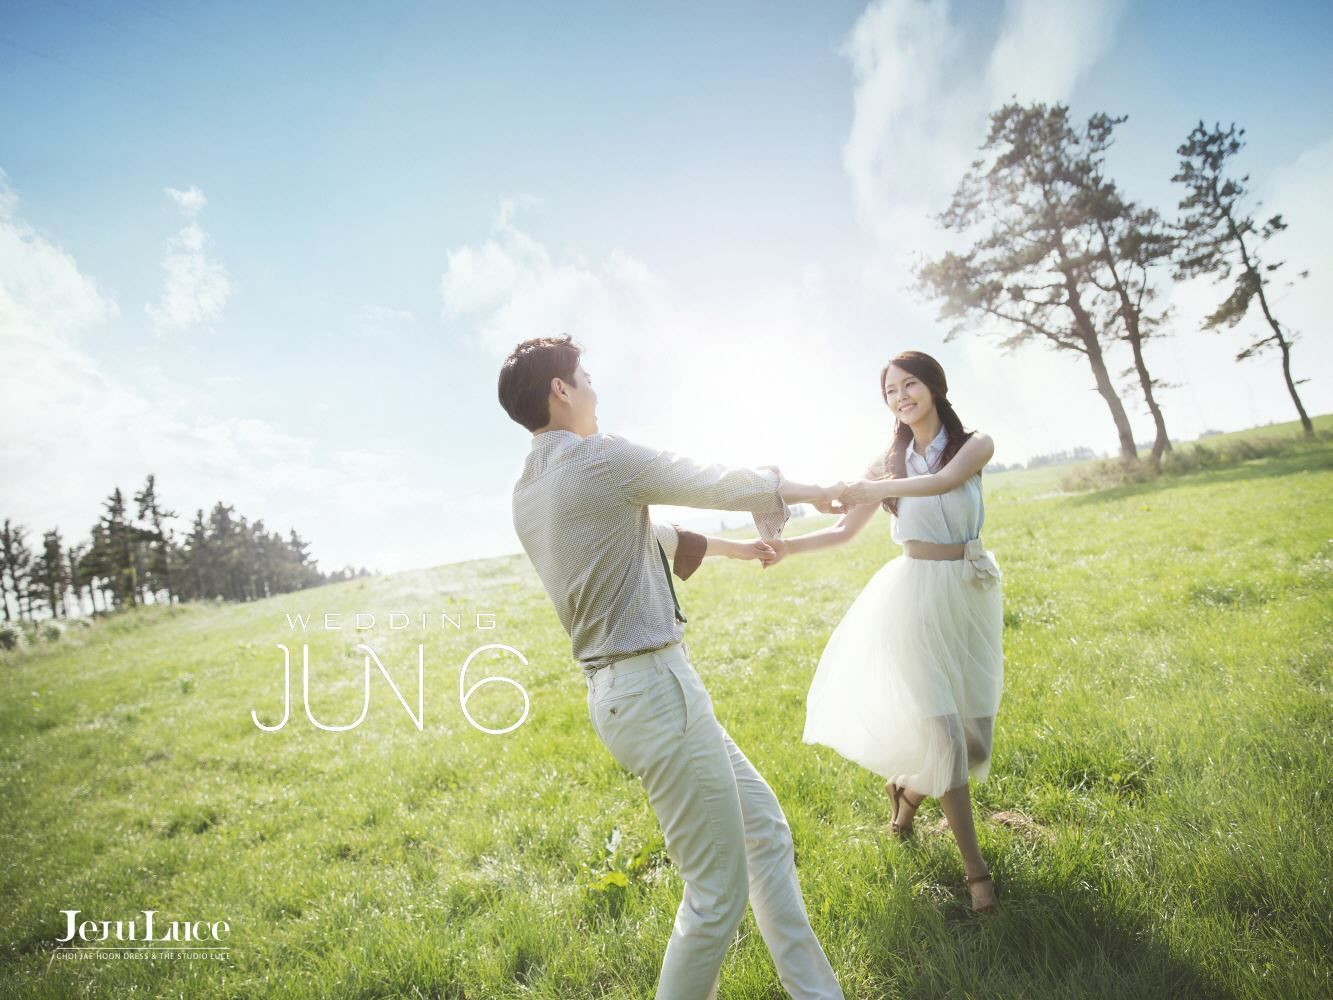 Pre Wedding Photography Packages Engagement Ideas Photoshoot Jeju Island Seoul Korea Outdoor